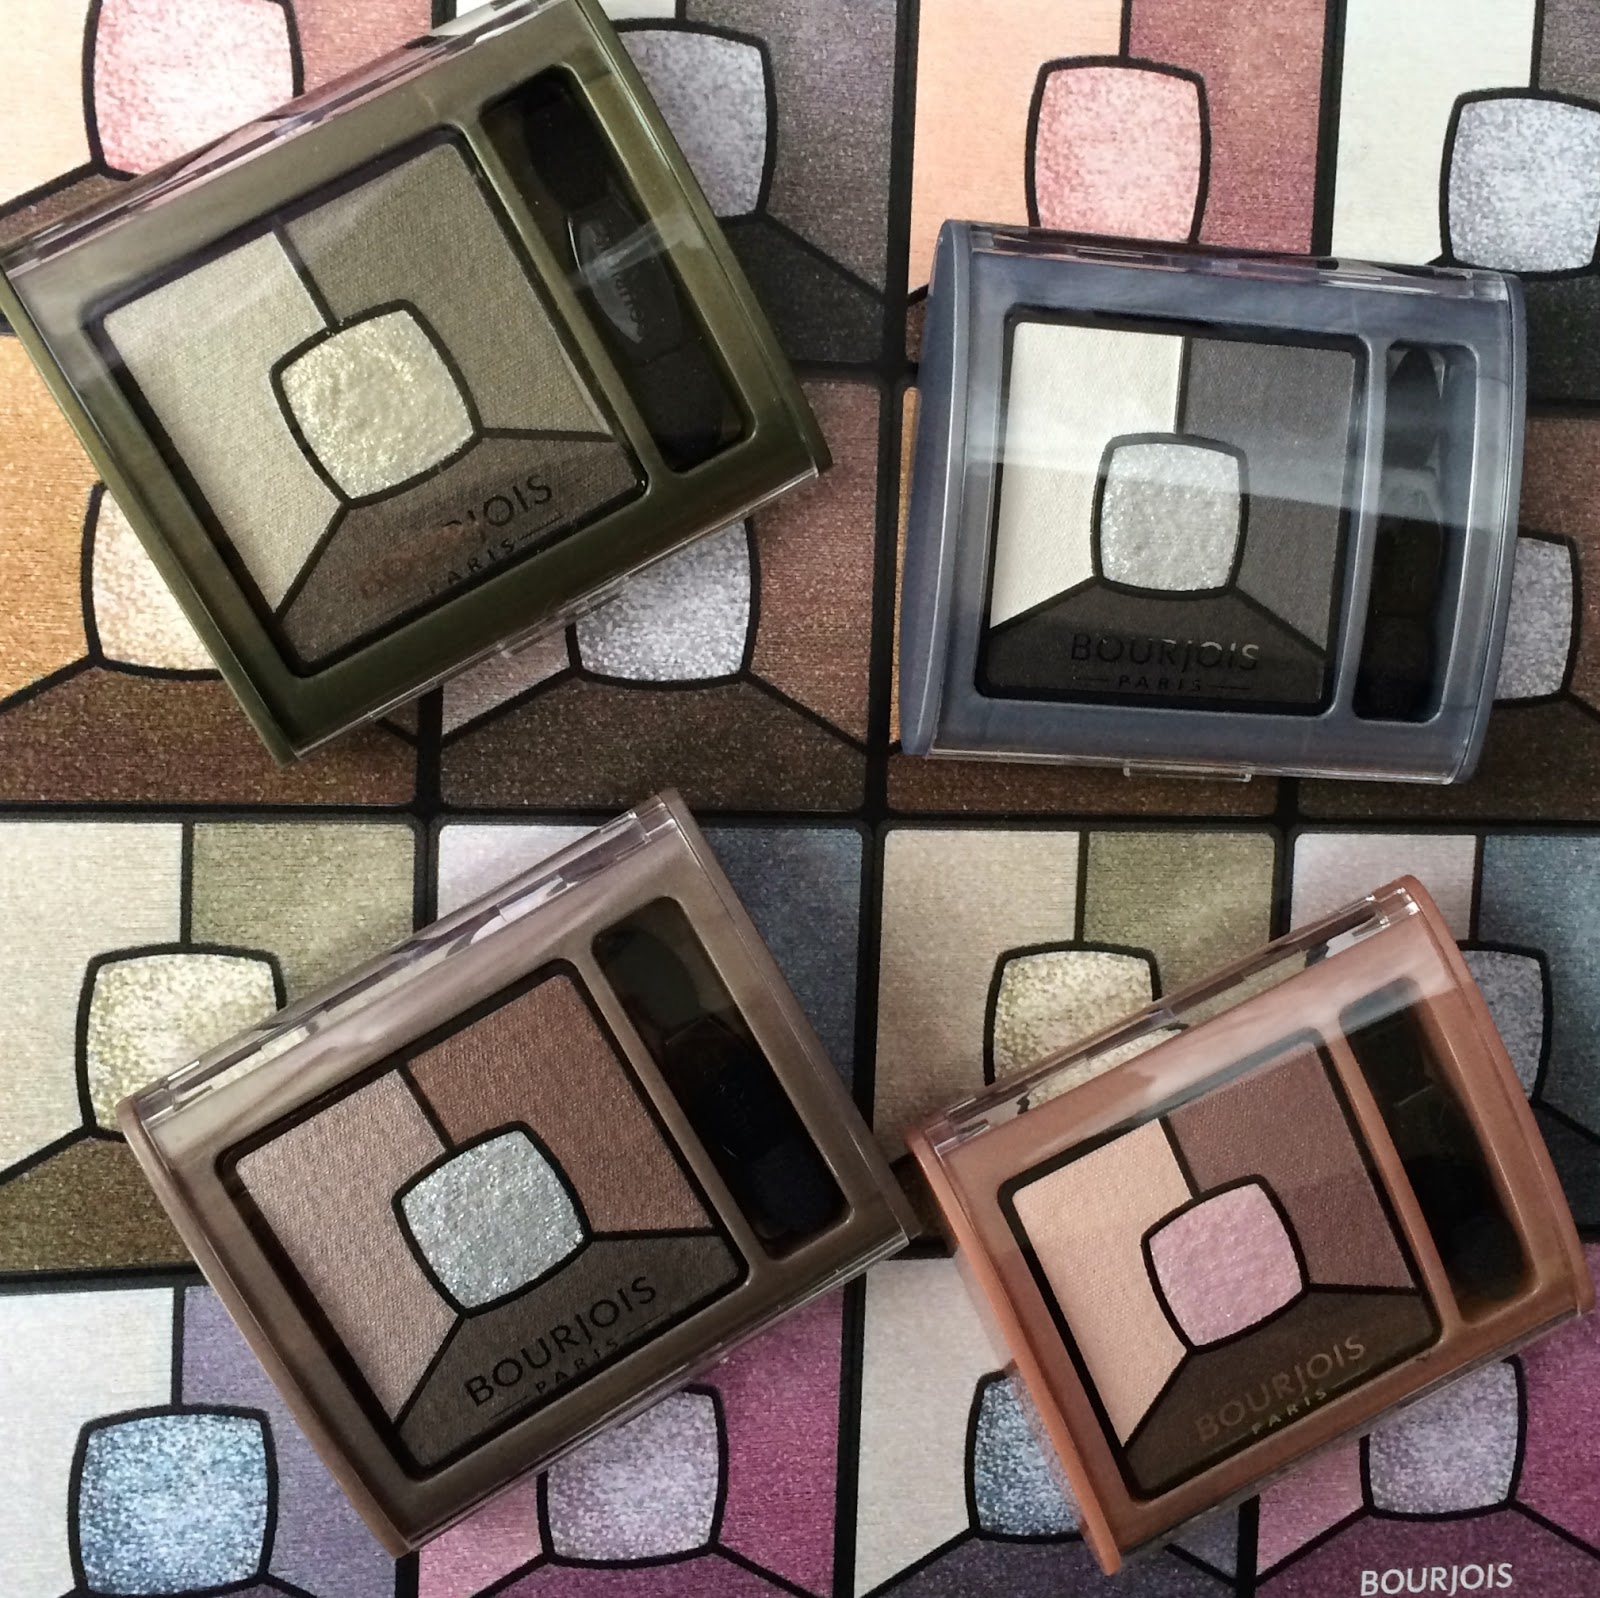 Bourjois-Quad-Smoky-Stories-eyeshadow-Palette-review-2014